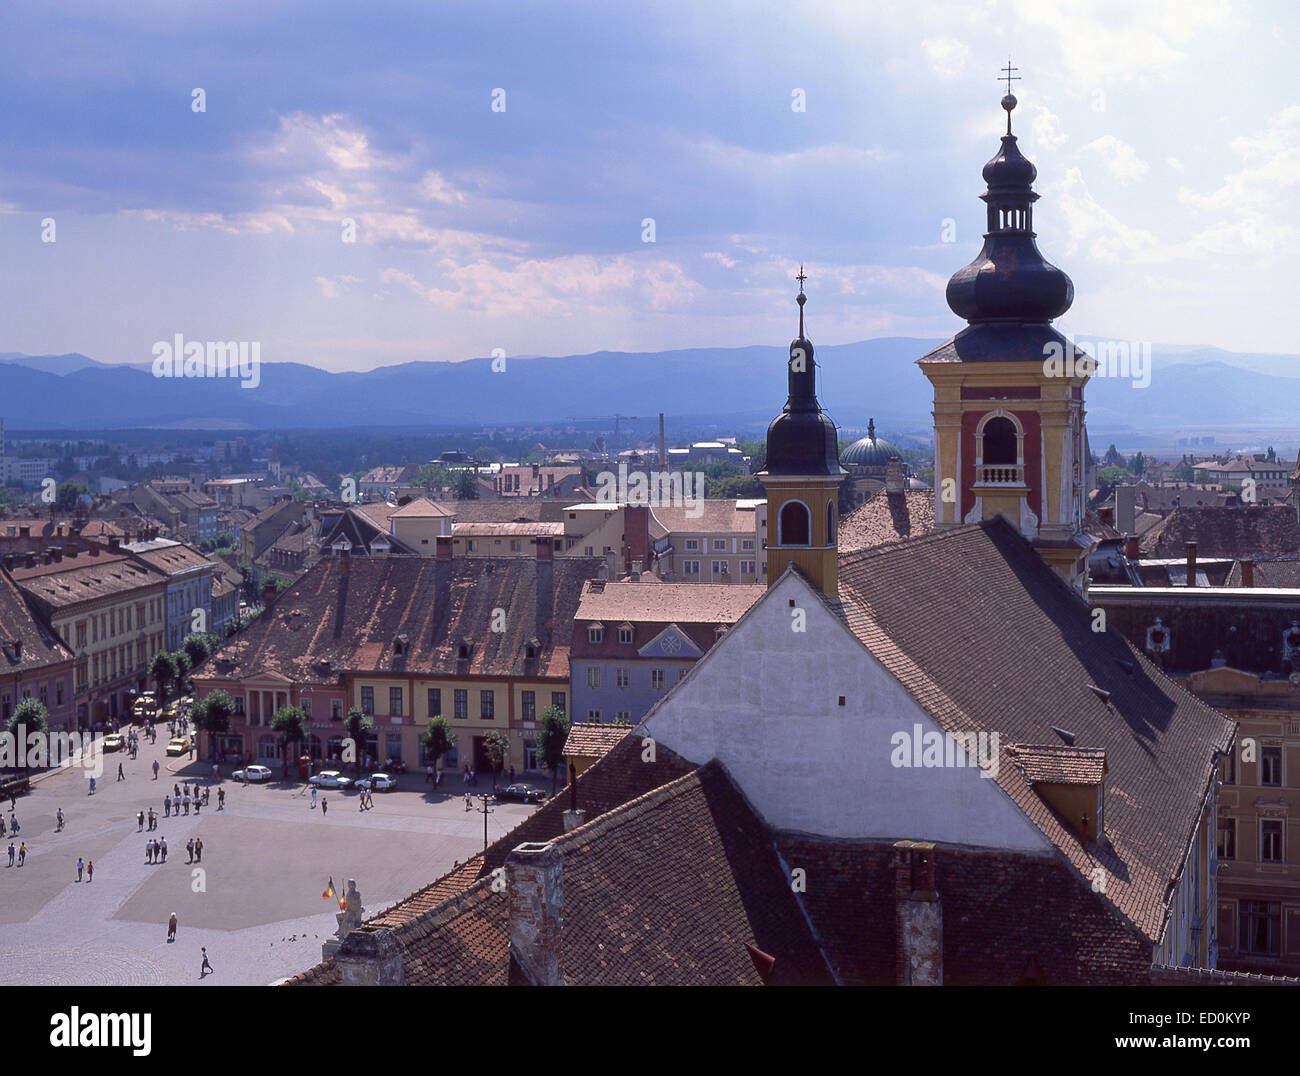 City view, Sibiu, Sibiu County, Centru (Transylvania) Region, Romania - Stock Image